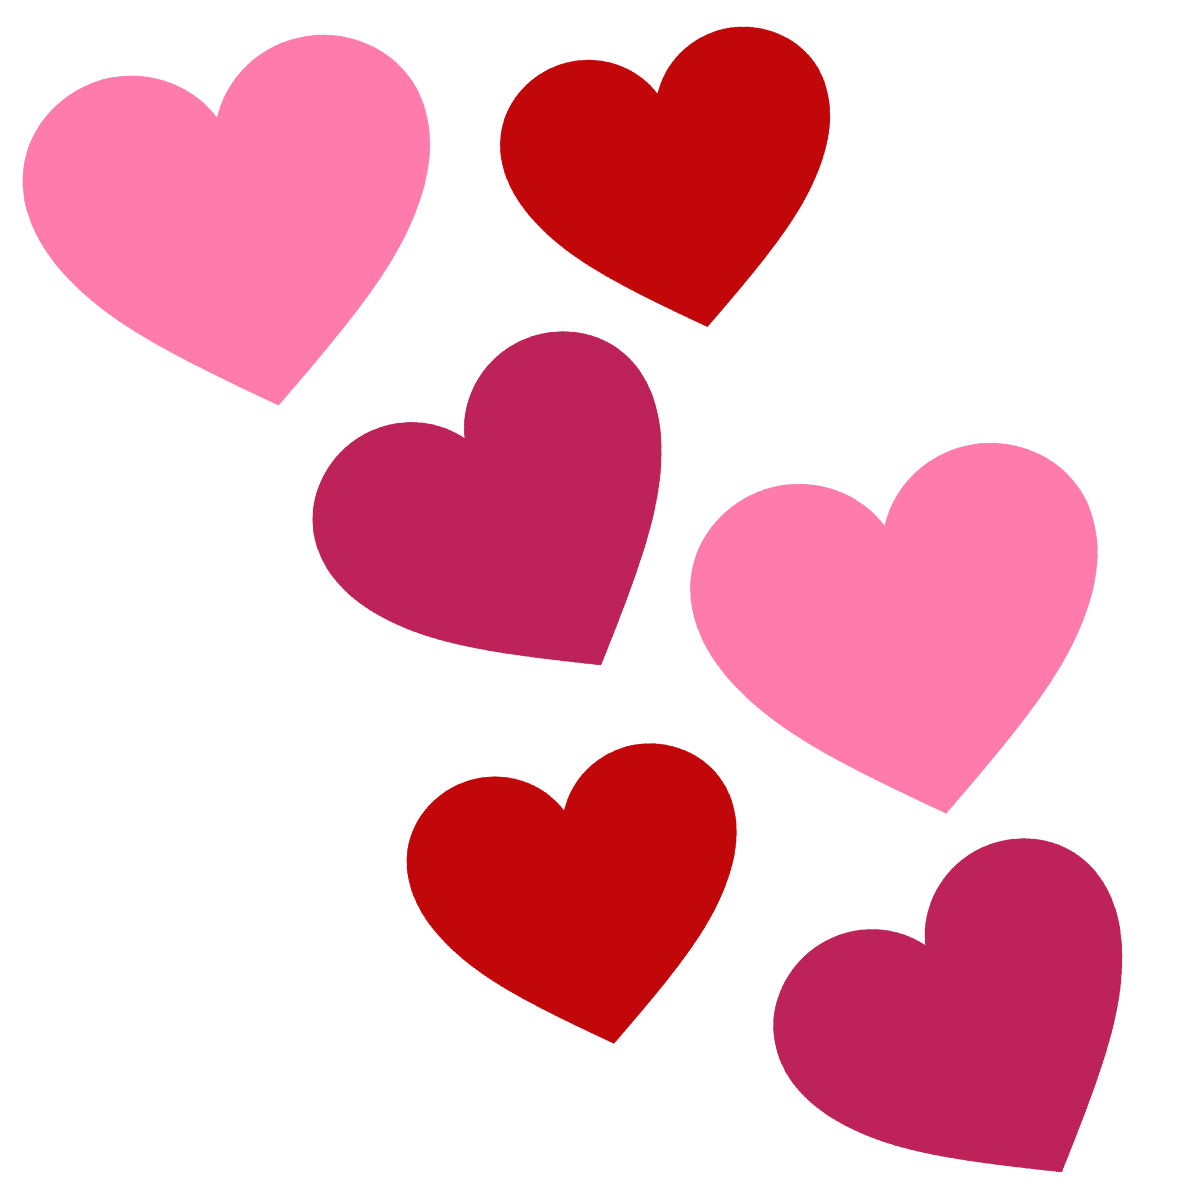 clipart free download heart clipart